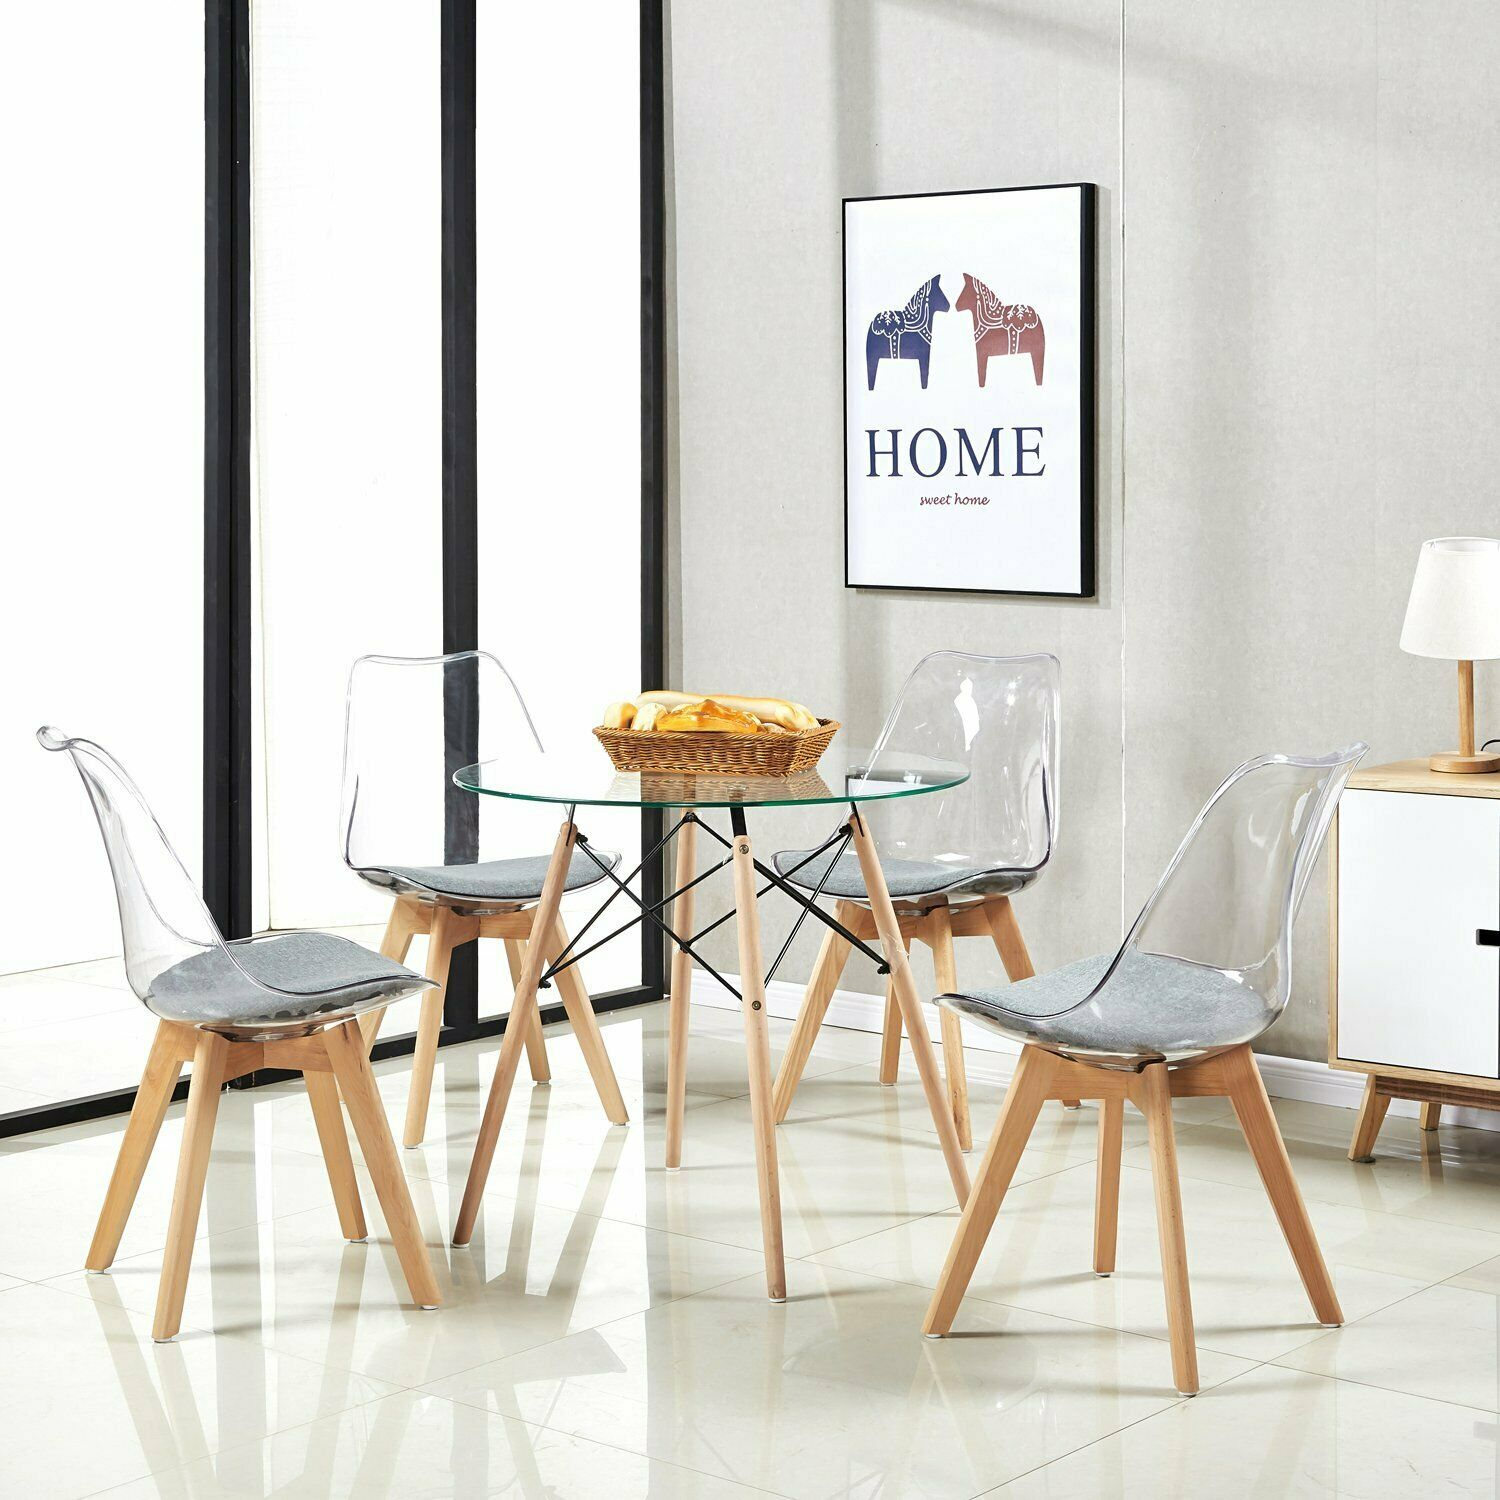 low priced 8c1ad 464b4 Details about EGGREE 4pcs Contemporary Design Transparent Clear Dining  Chairs With Padded Seat